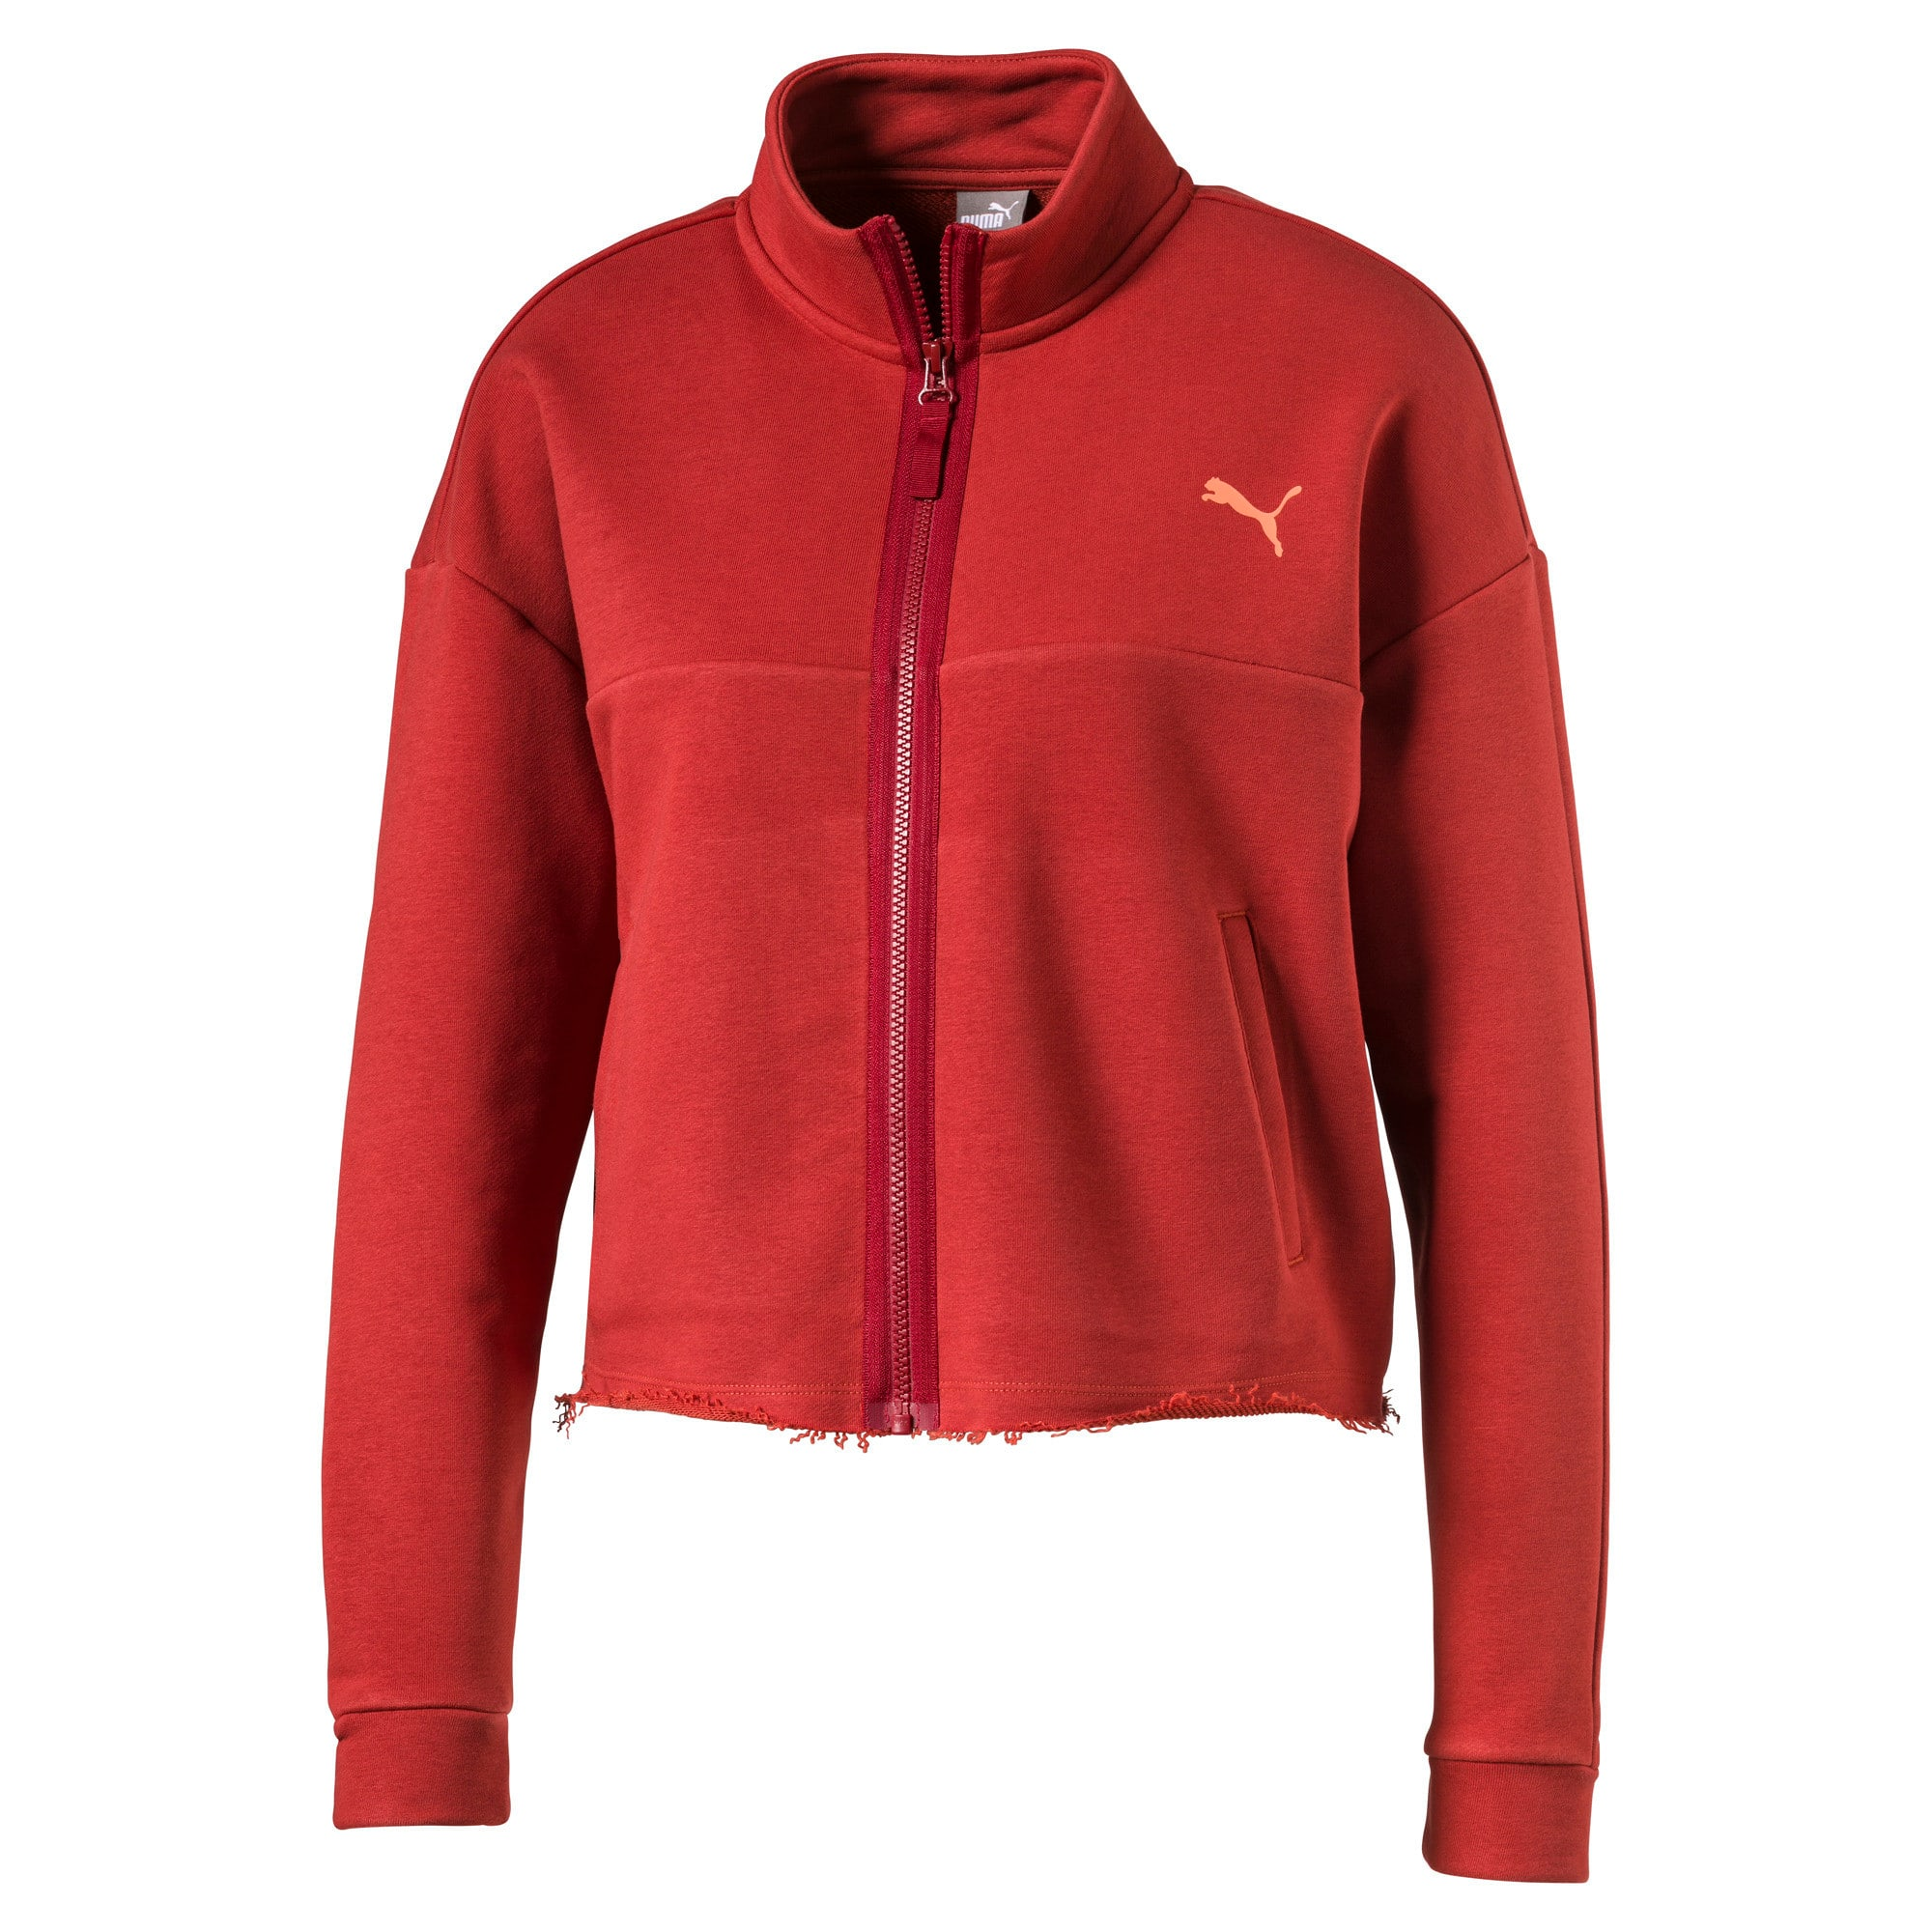 Anteprima 1 di Women's Sweat Jacket, Bossa Nova, medio